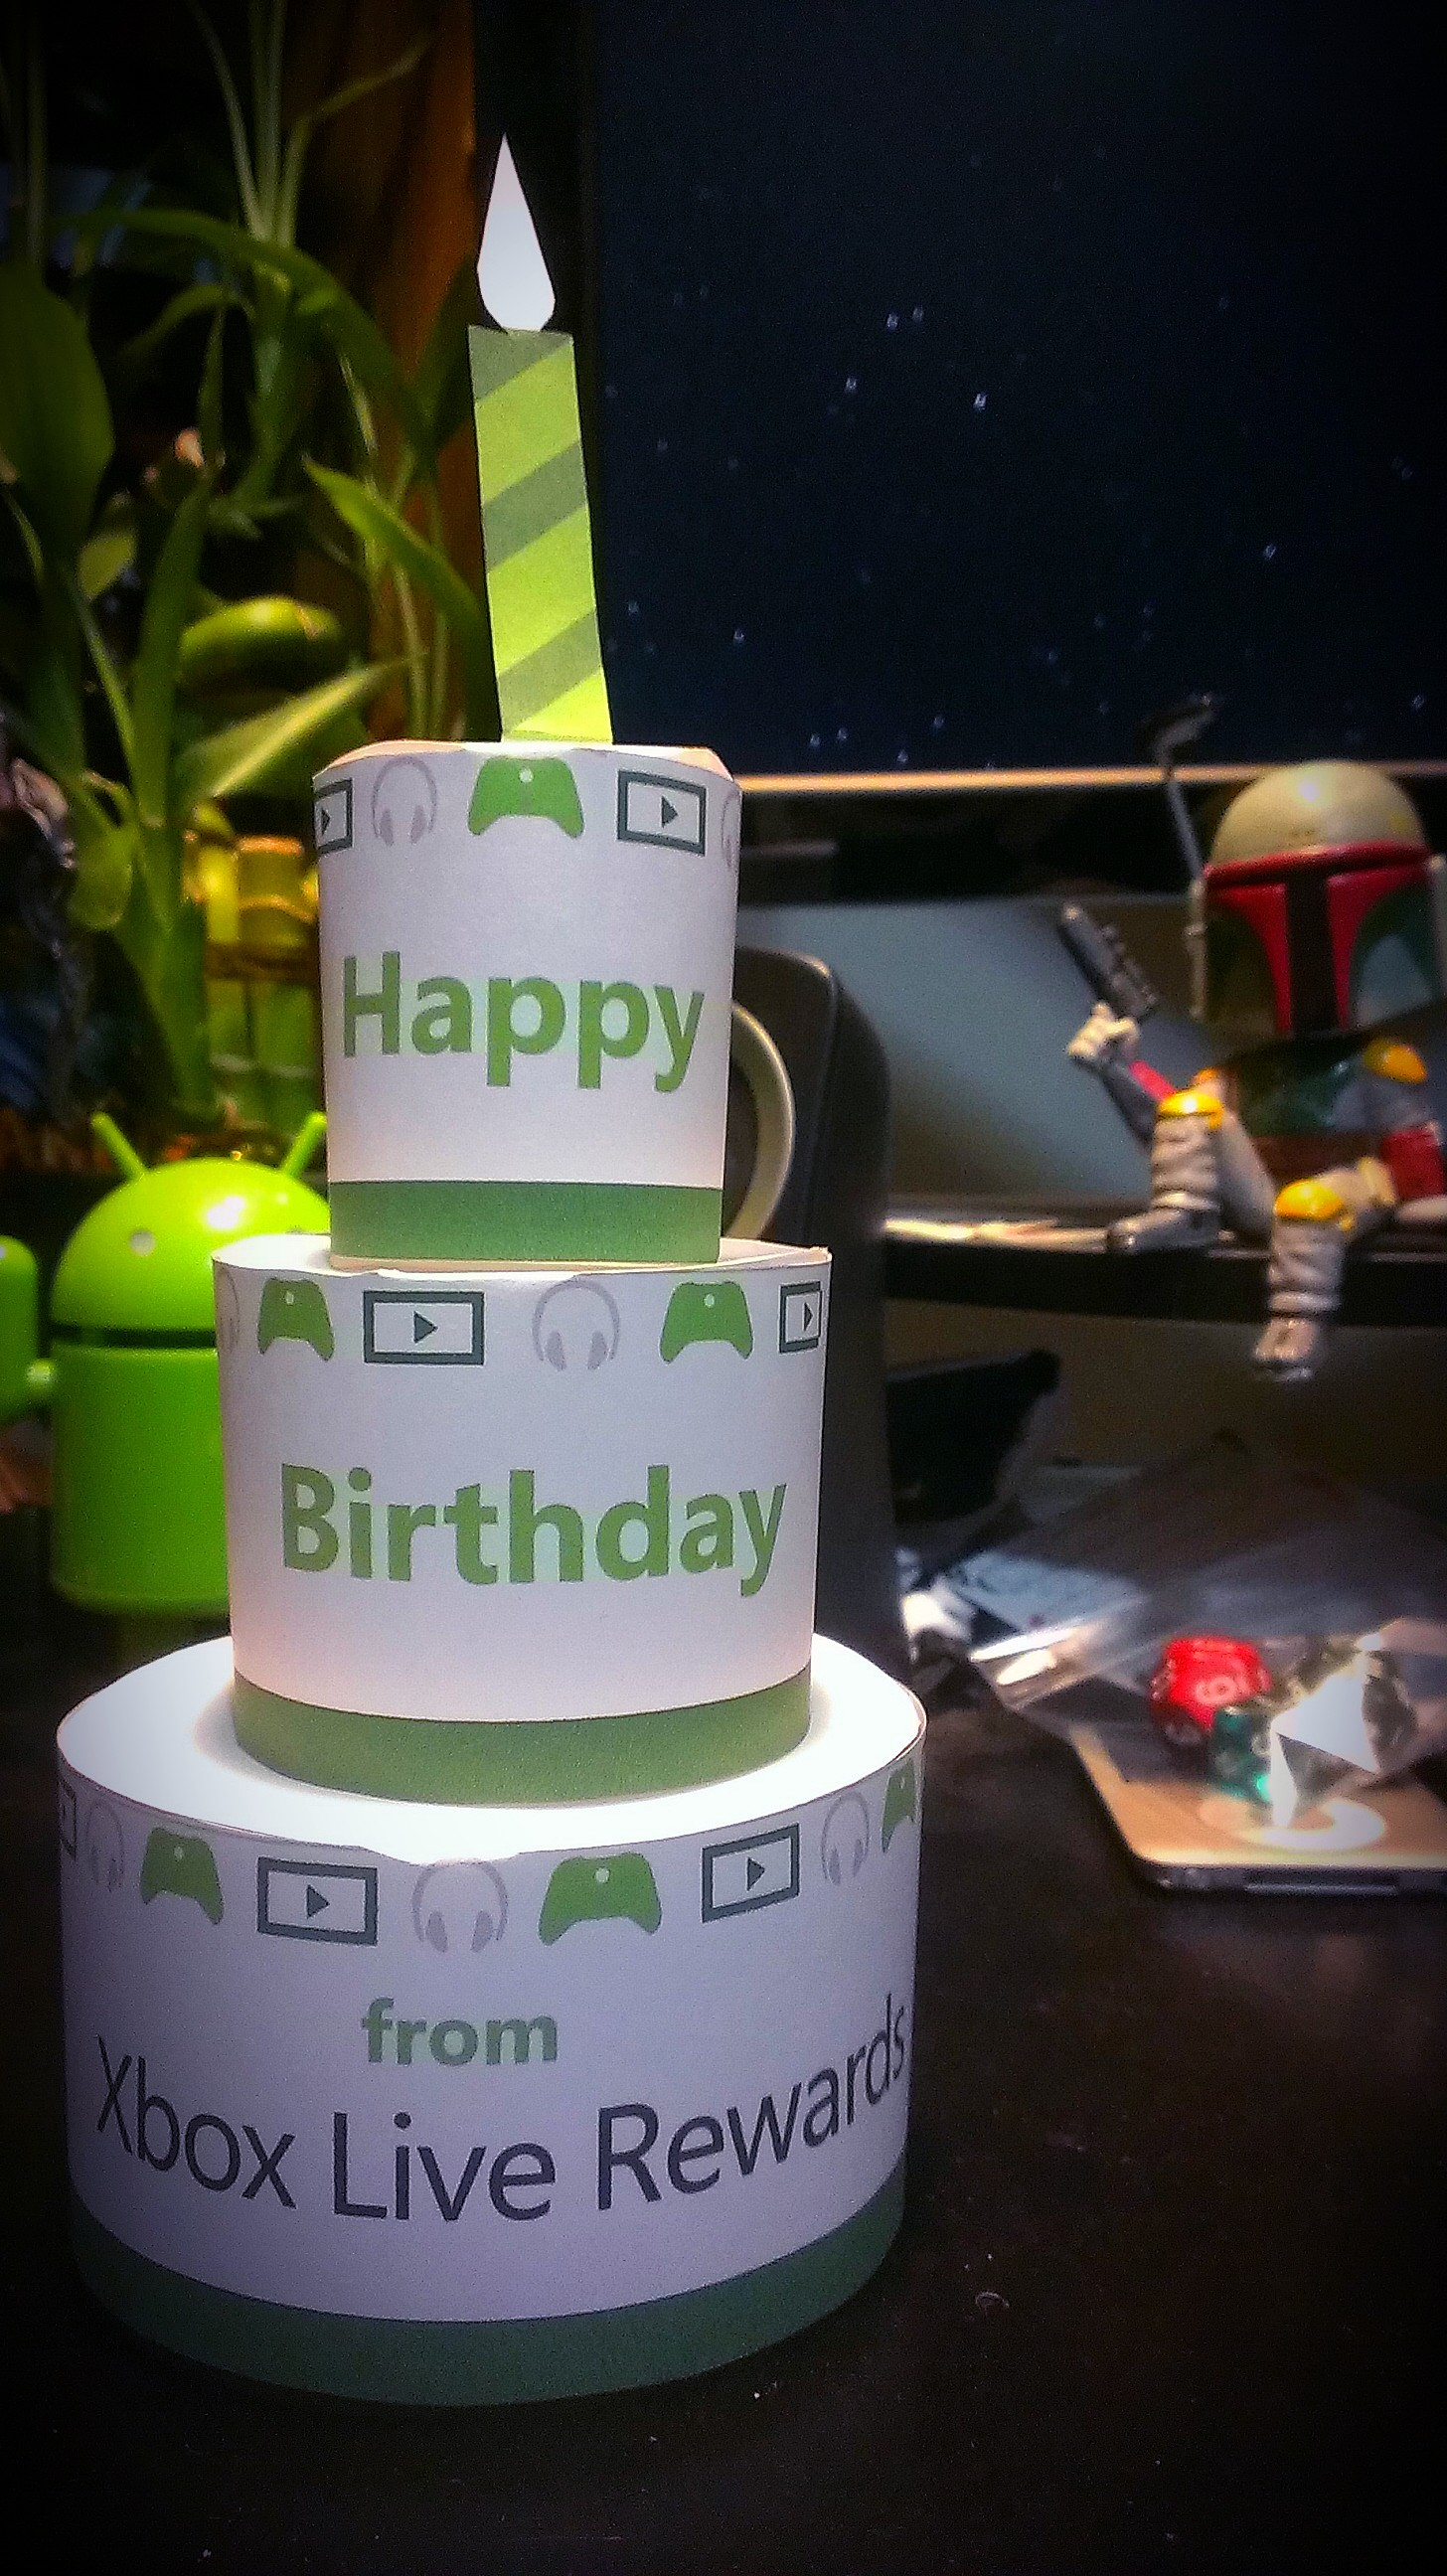 Xbox Birthday Cake The Thread Of Random Gaming Promos